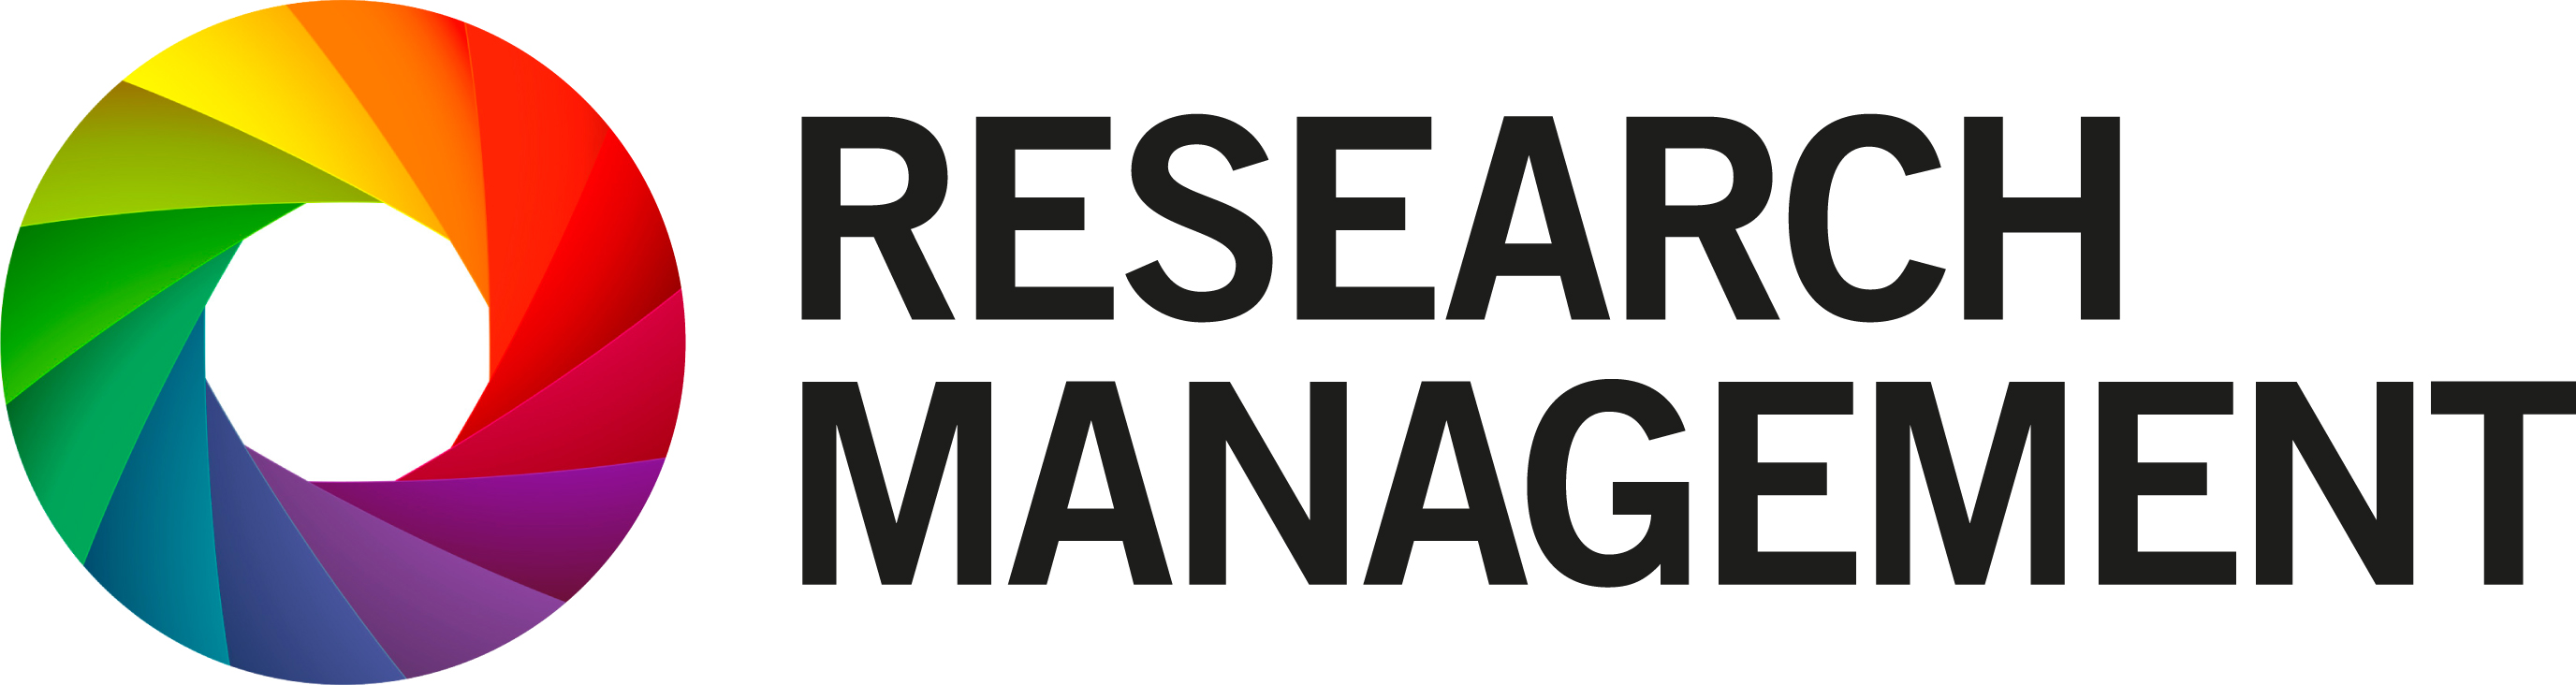 Research Management logo